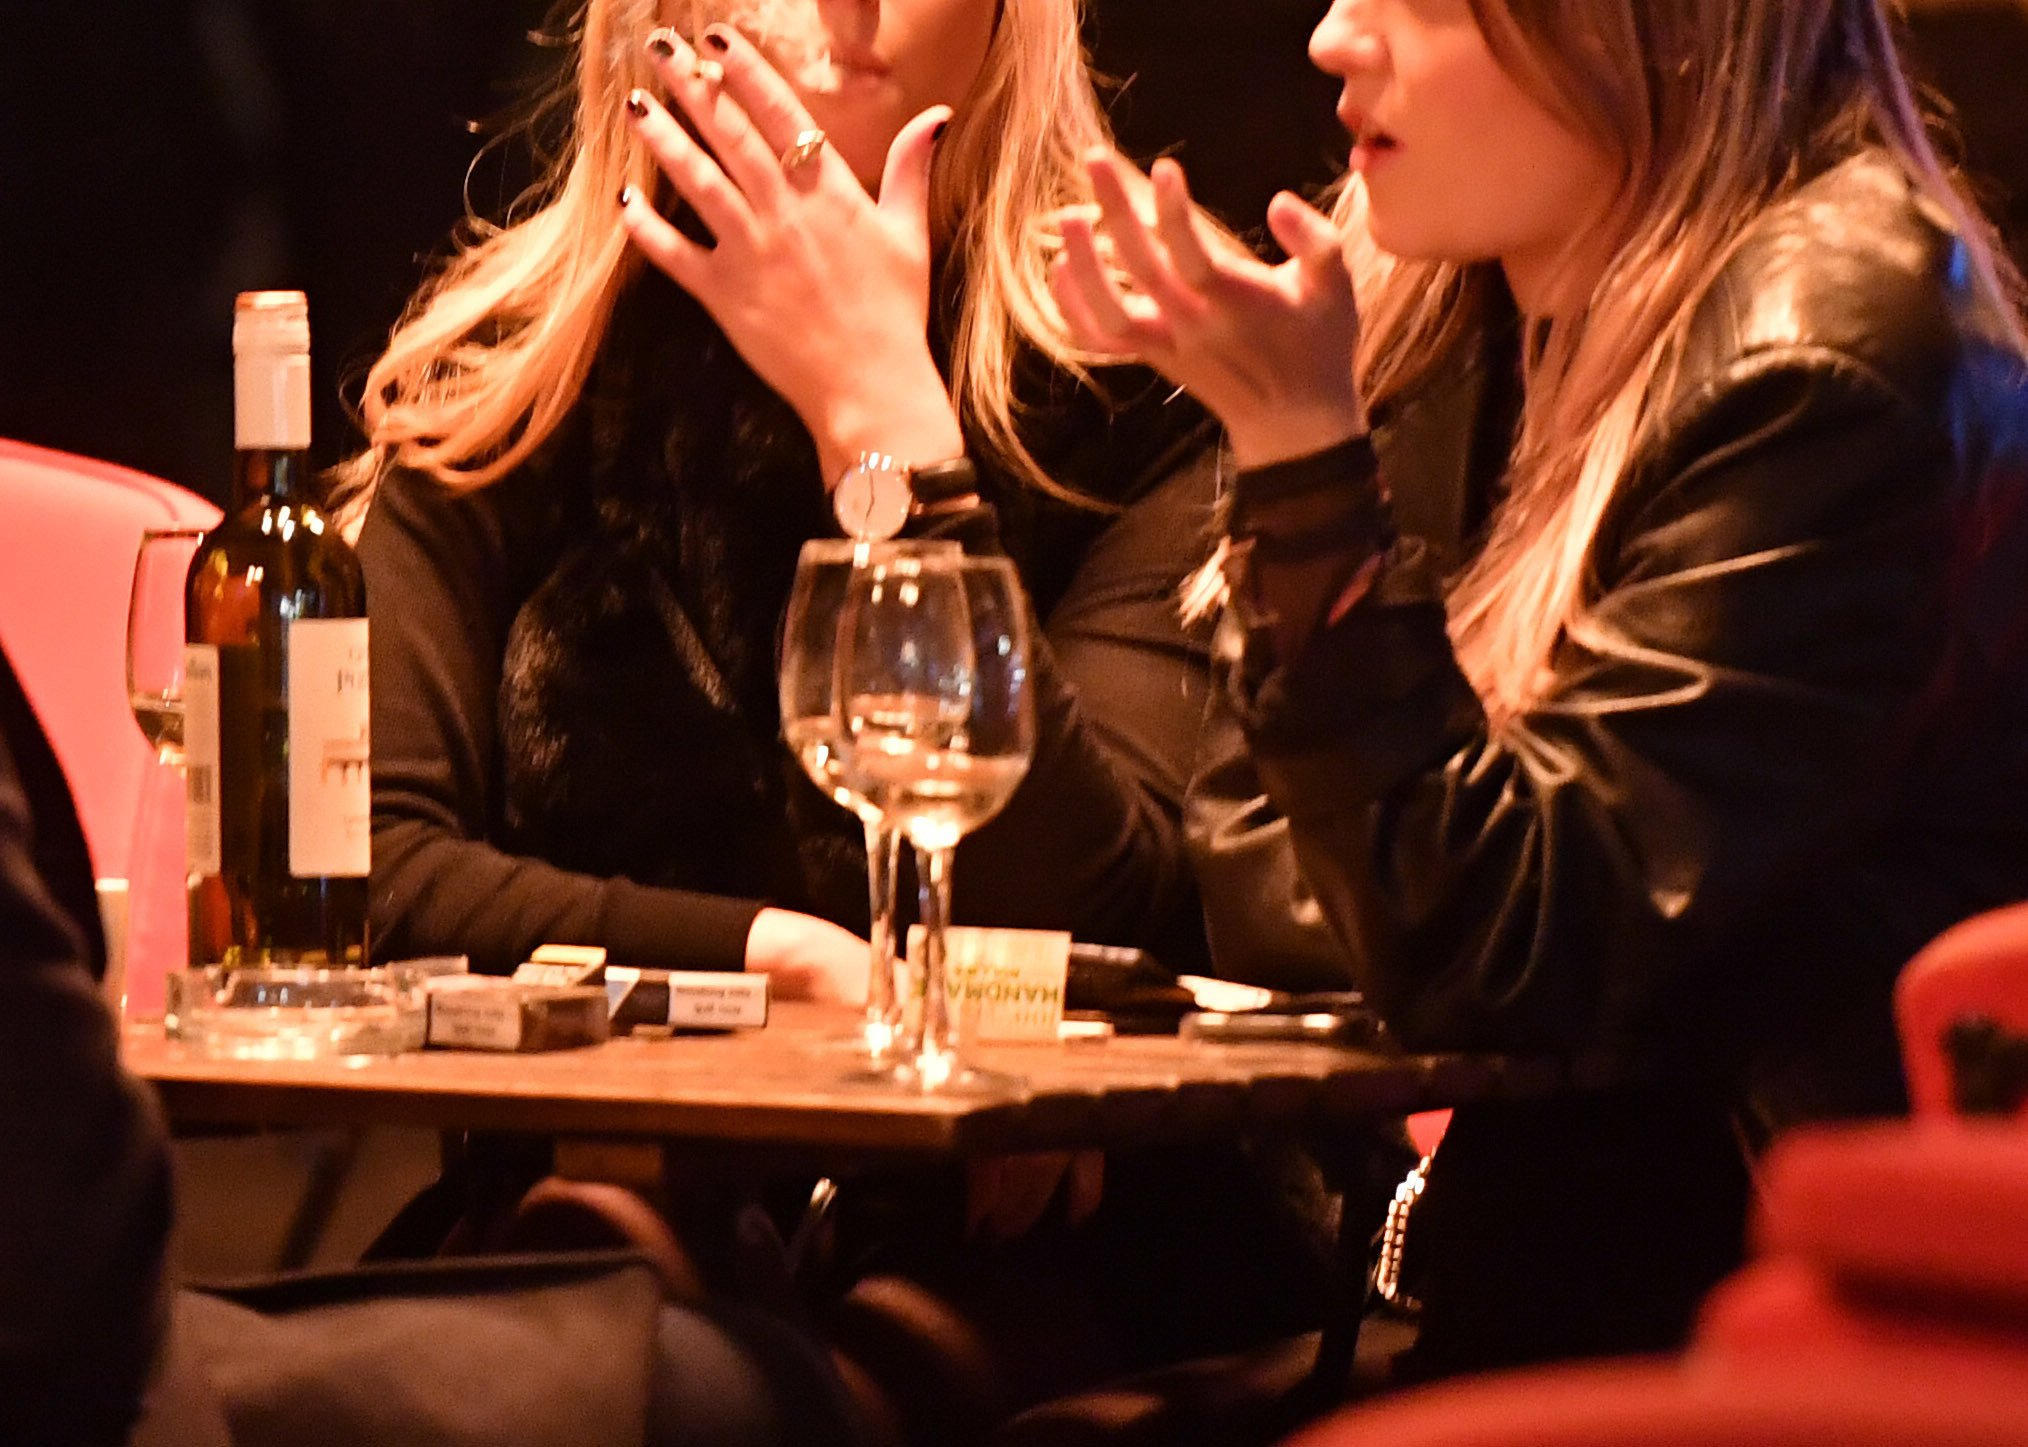 Drinking alcohol can be good for your brain health